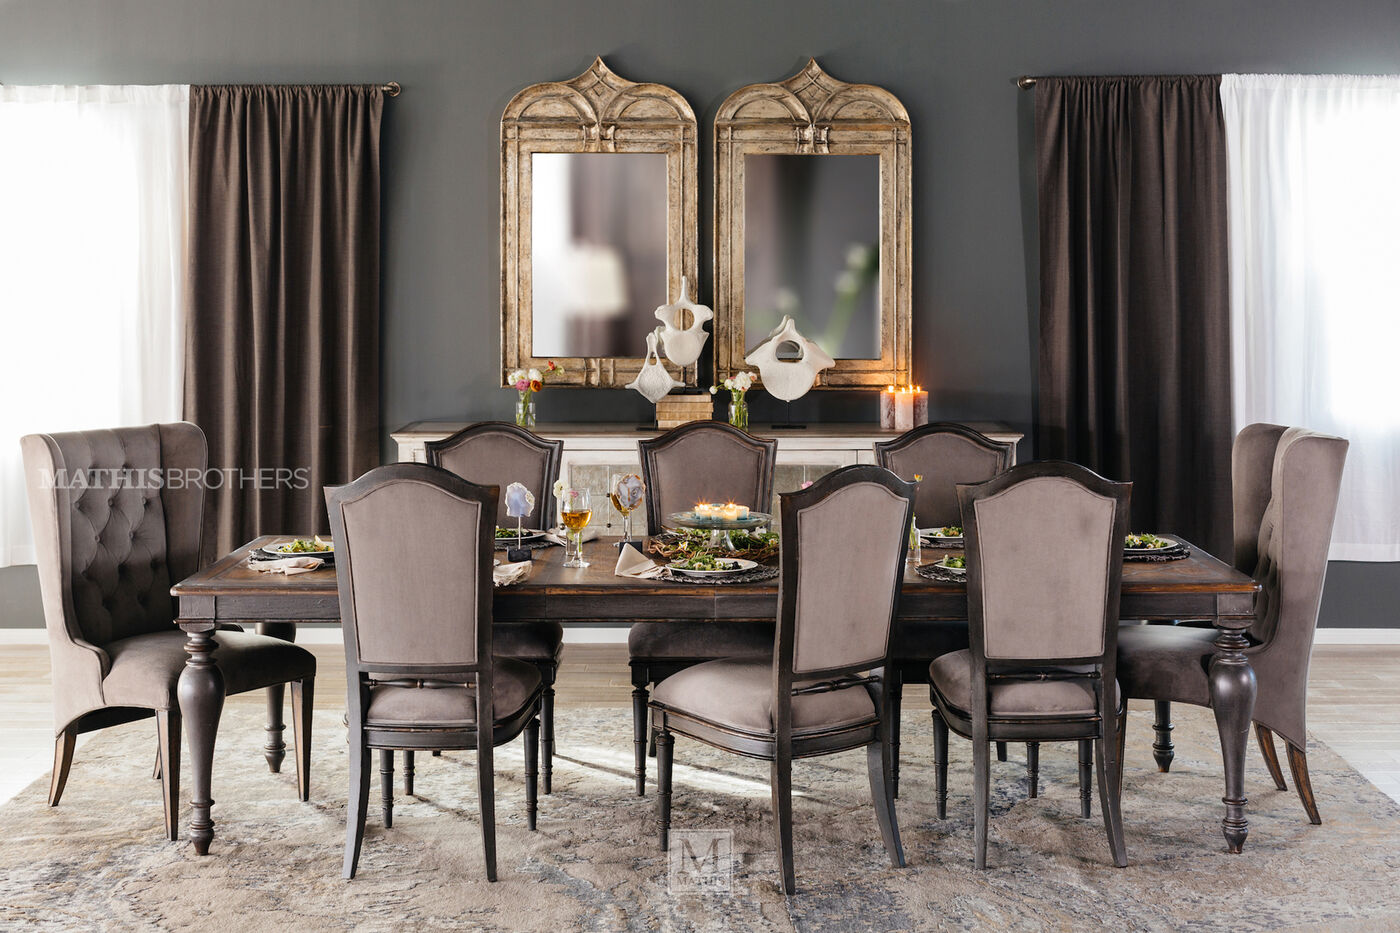 Amusing Dining Room Host Chairs Gallery Best inspiration home